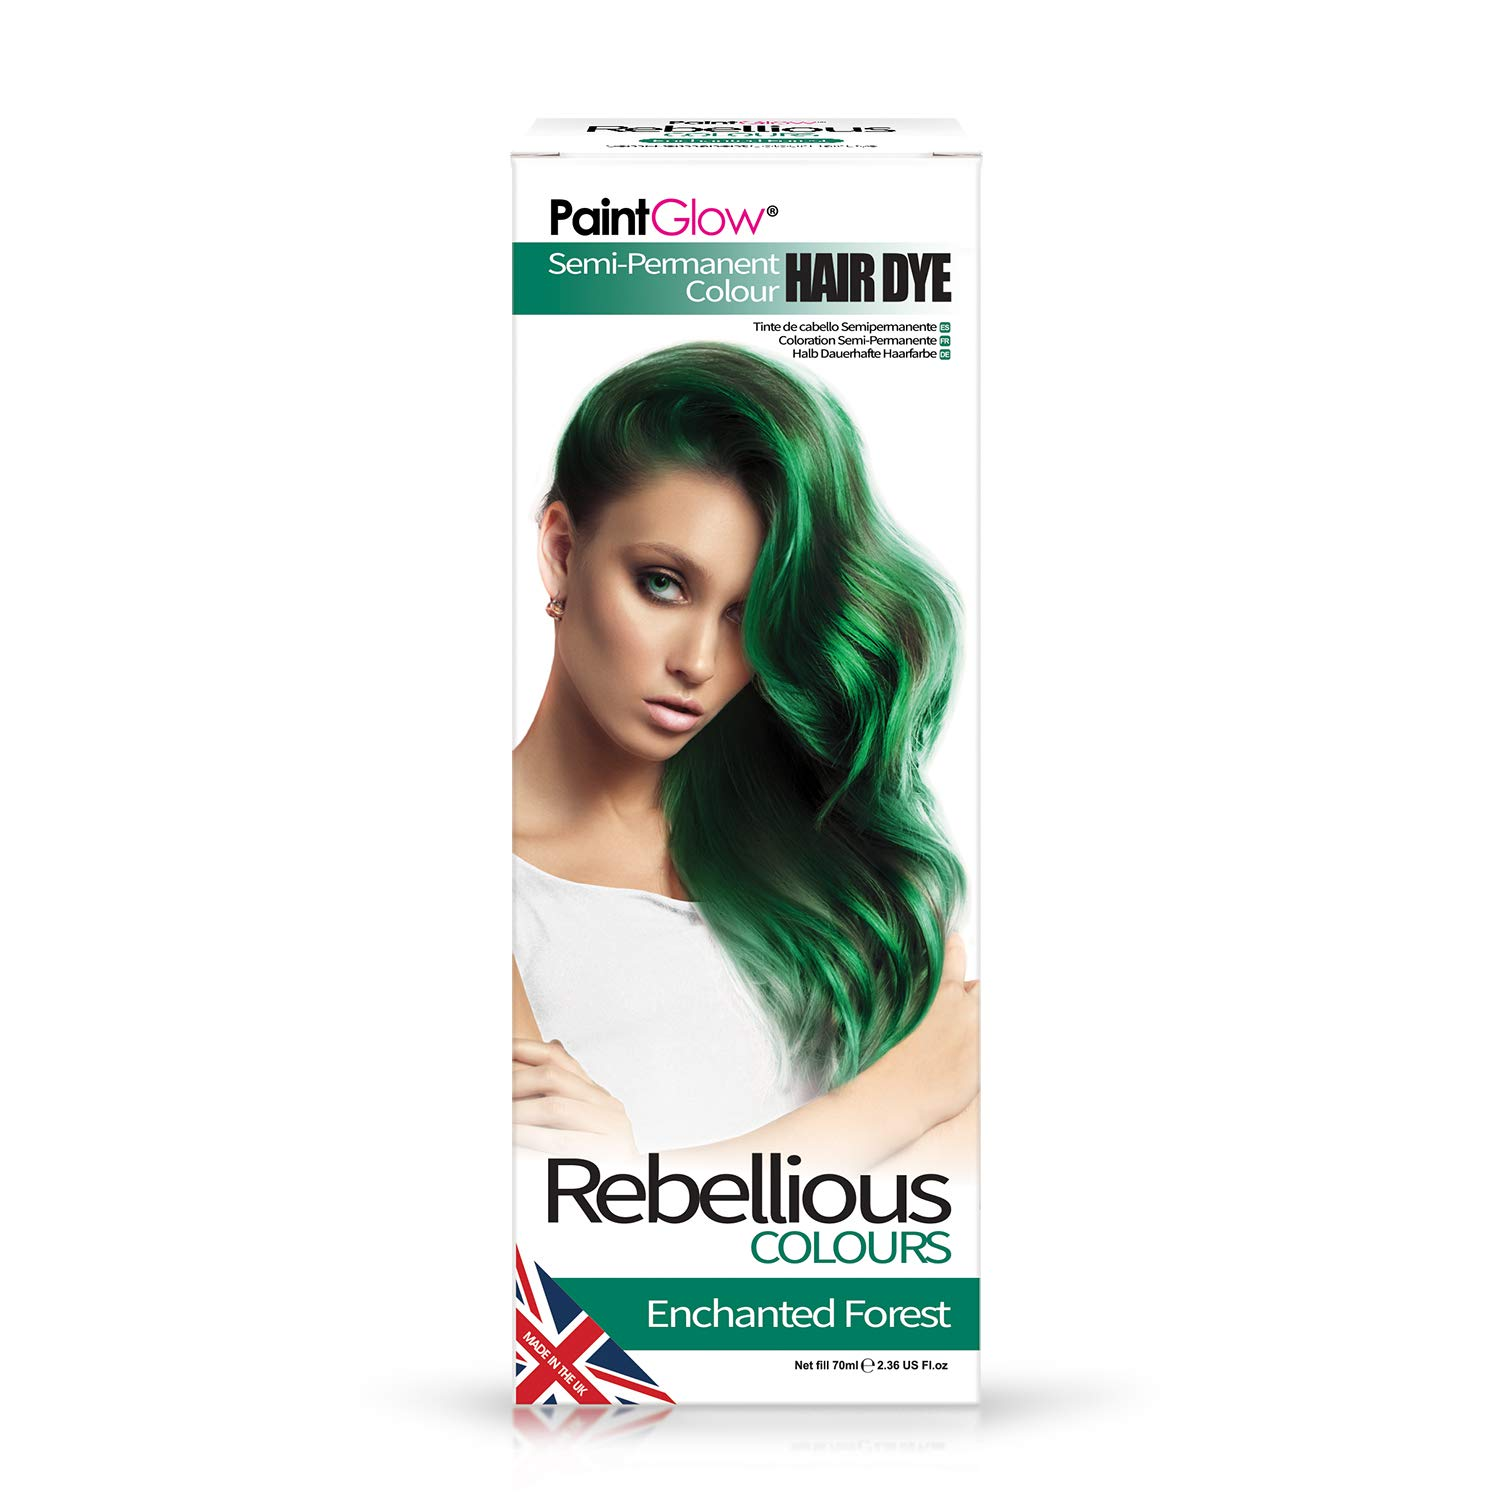 Paint Glow Rebellious Colours Semi-Permanent Conditioning Hair Dye 70ml-Electric Blue AHR1W57